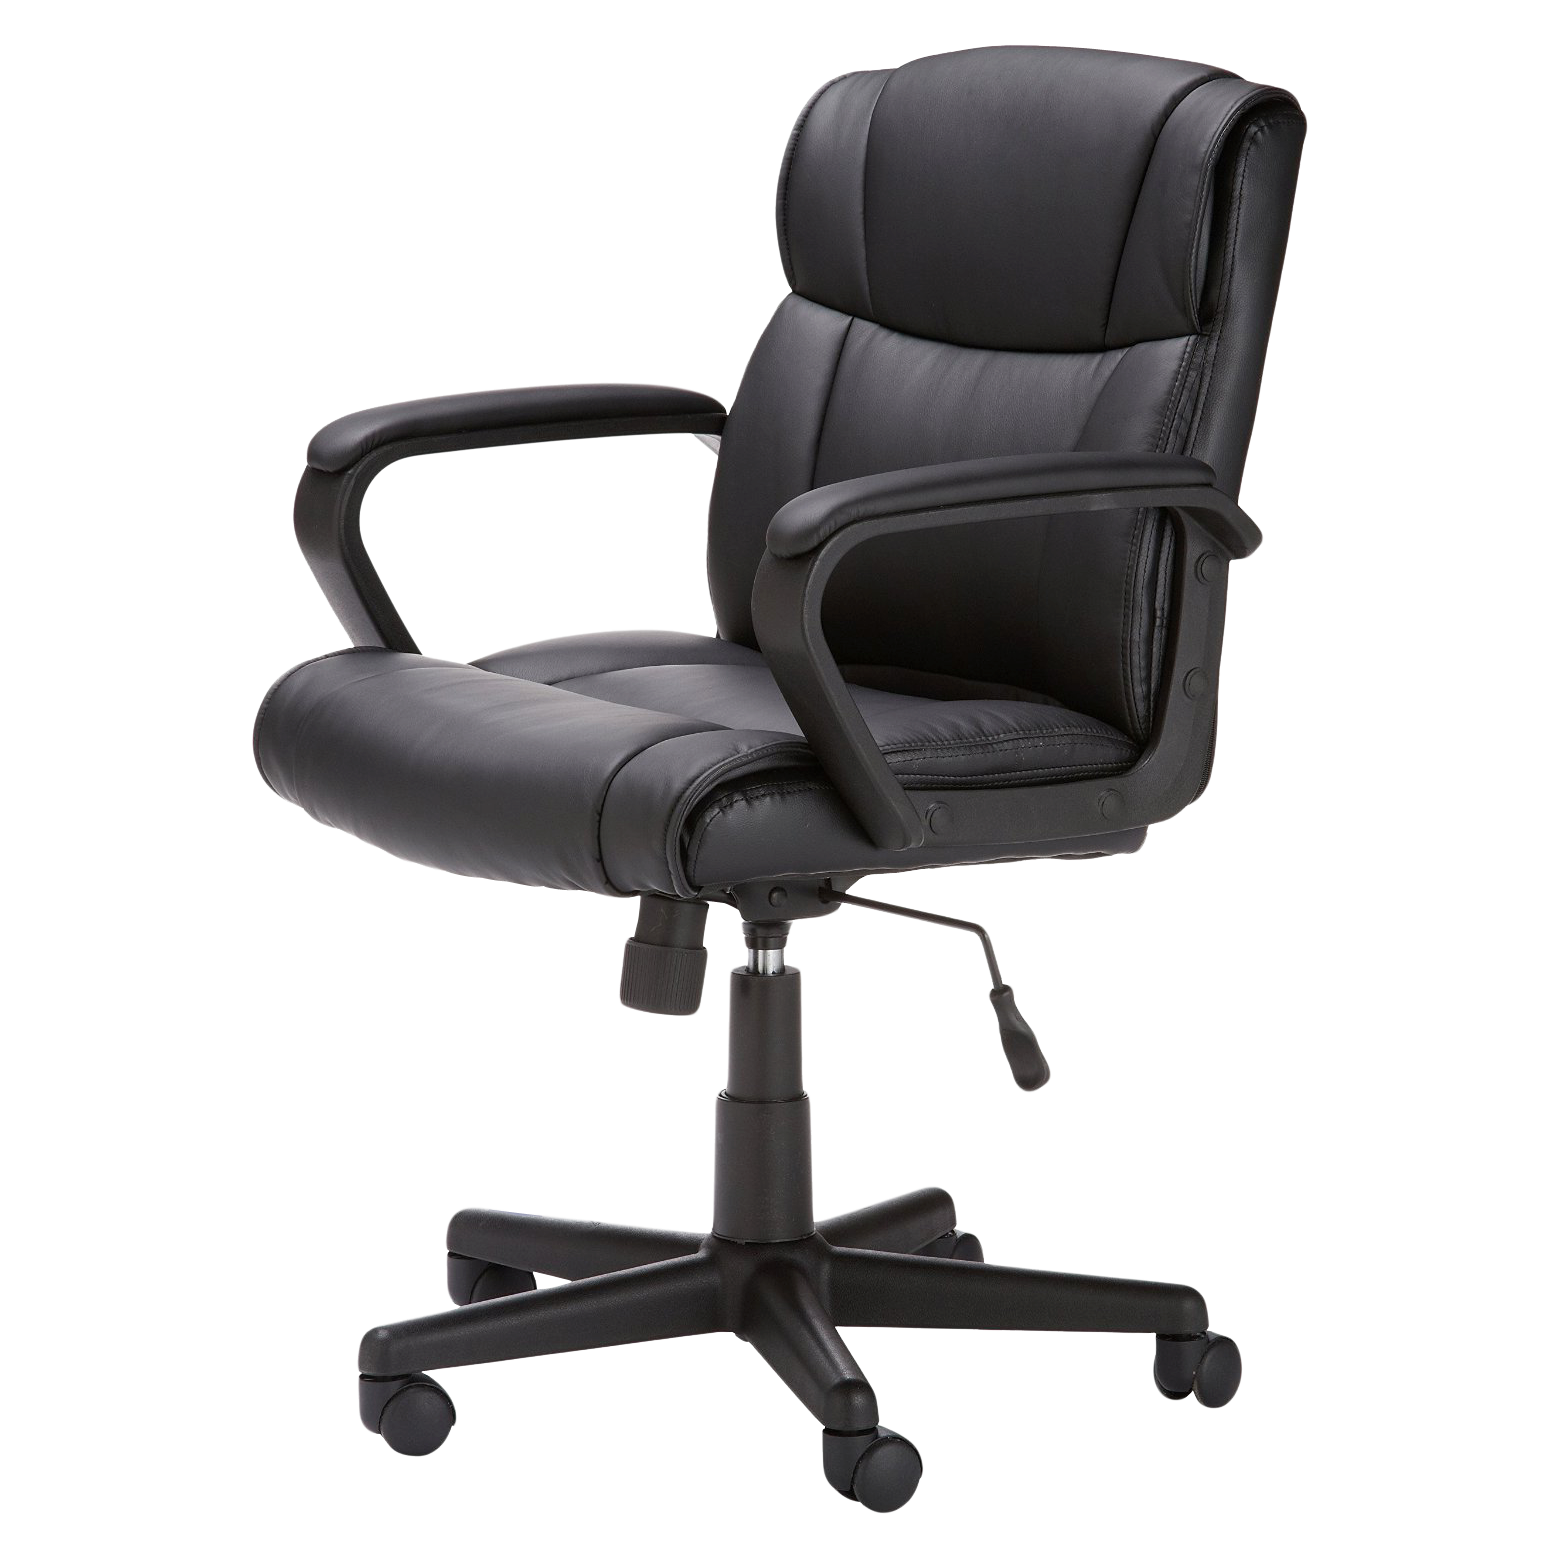 Rolling Chair Png Image Rolling Office Chair Vintage Office Chair Office Chair